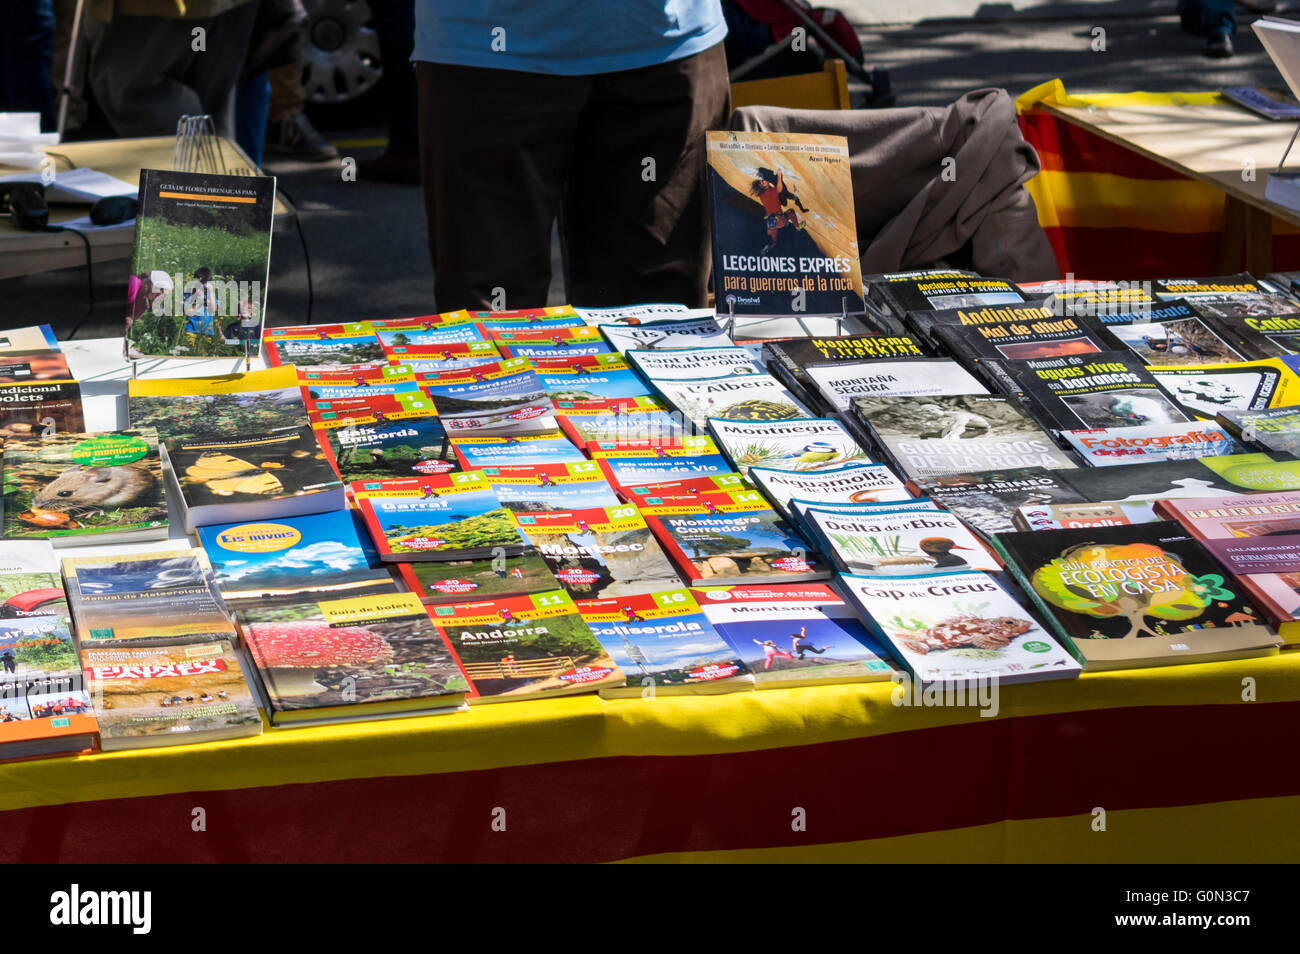 Books for sale at an outdoors booth on Diada de Sant Jordi (Saint George's day), 23 April, in Barcelona, Catalonia. - Stock Image